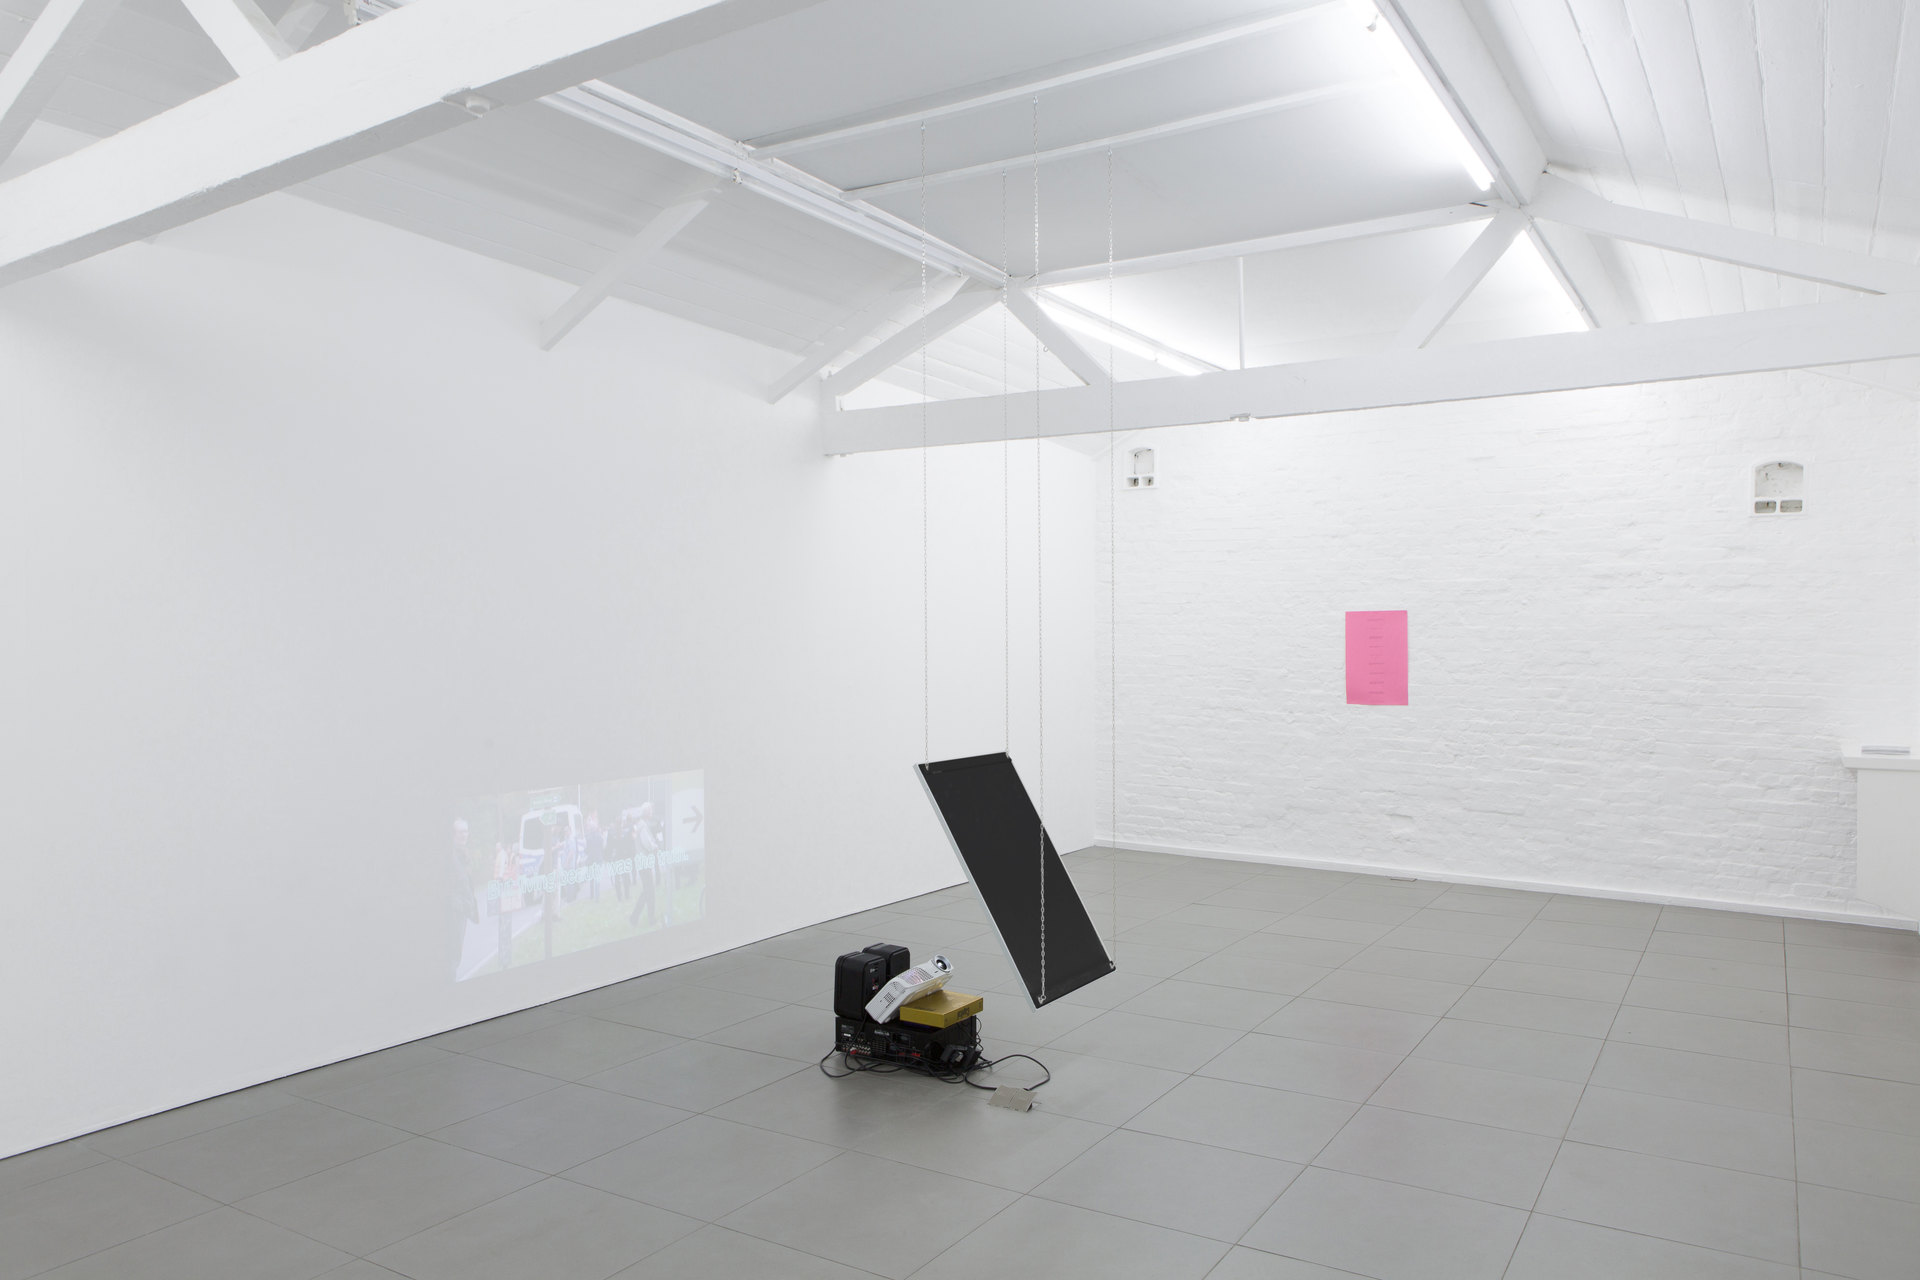 Perverts, installation view, 2017, Cell Project Space